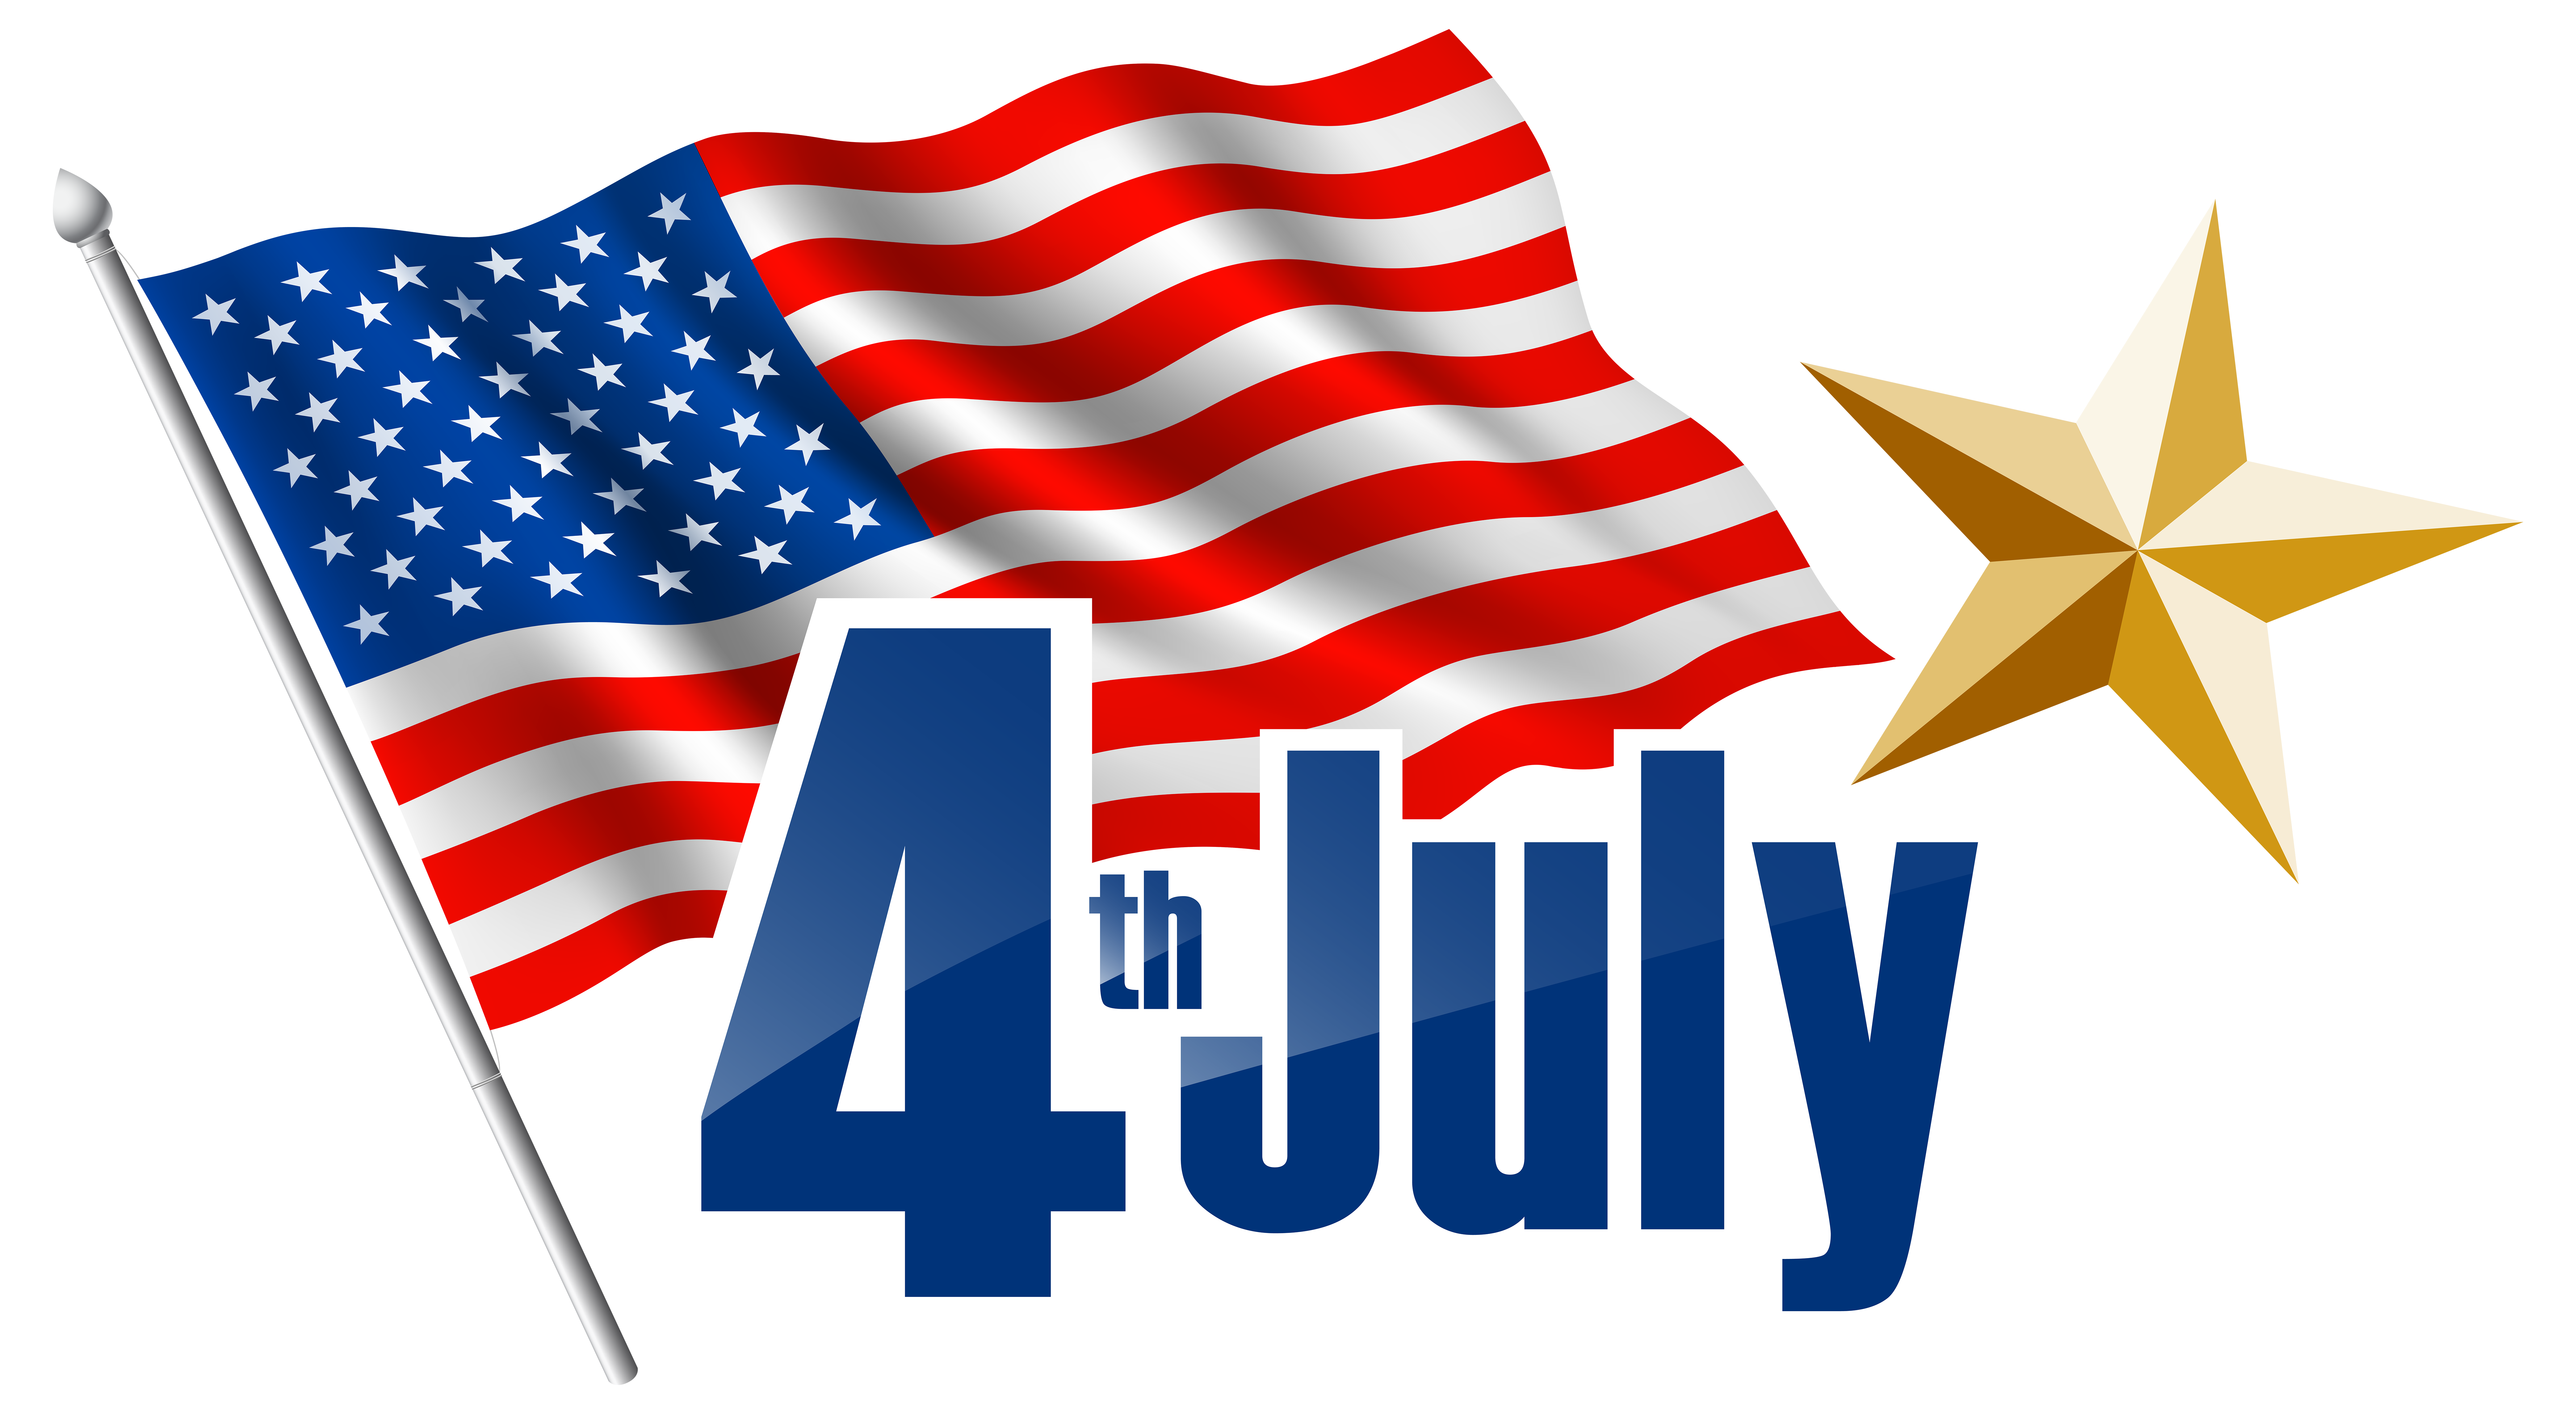 Fourth of july free clipart jpg transparent stock 4th Of July Free Clipart | Free download best 4th Of July Free ... jpg transparent stock